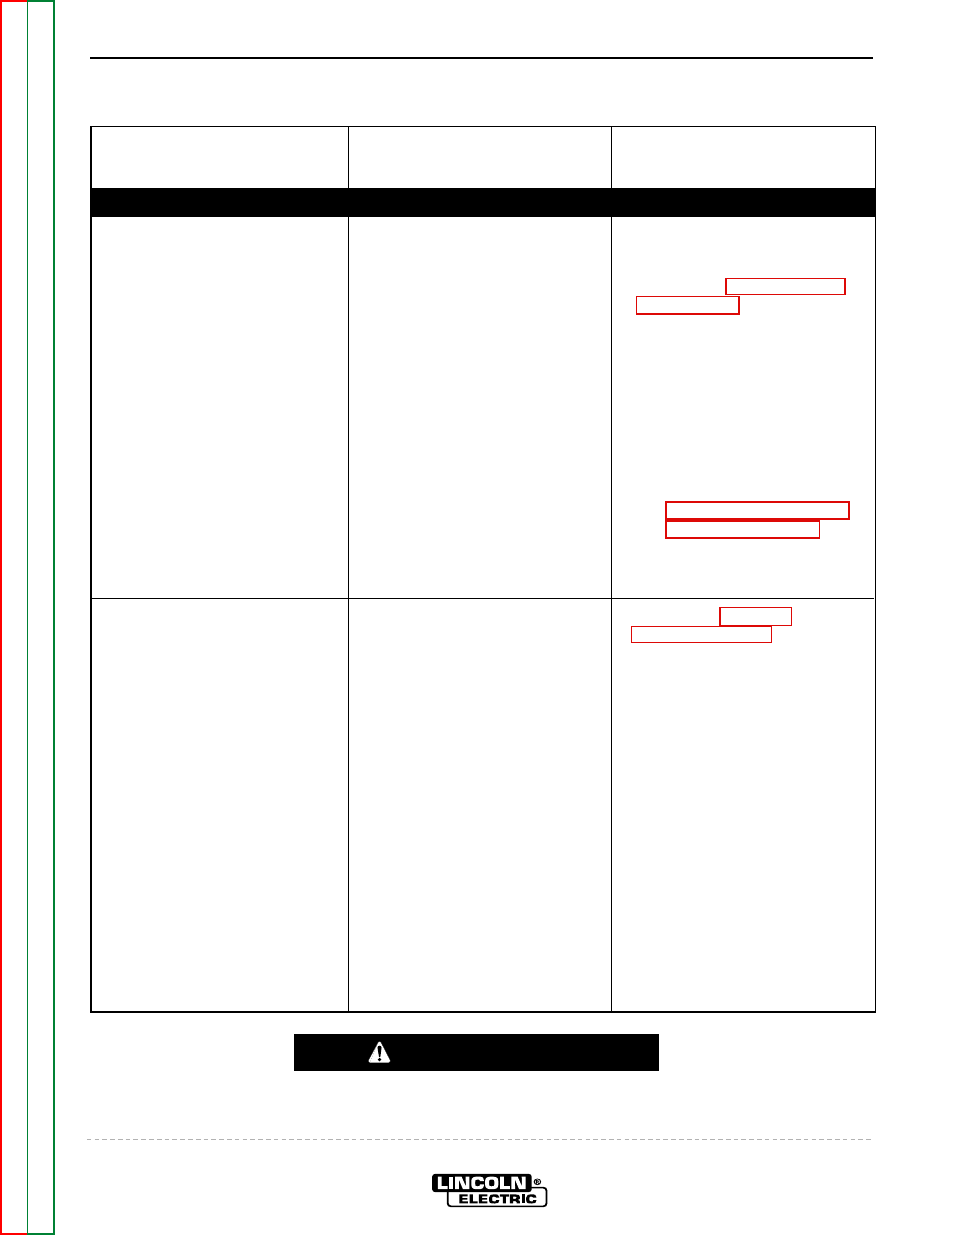 Troubleshooting Repair Caution Lincoln Electric Invertec V350 Welder Wiring Diagram Pro Svm152 A User